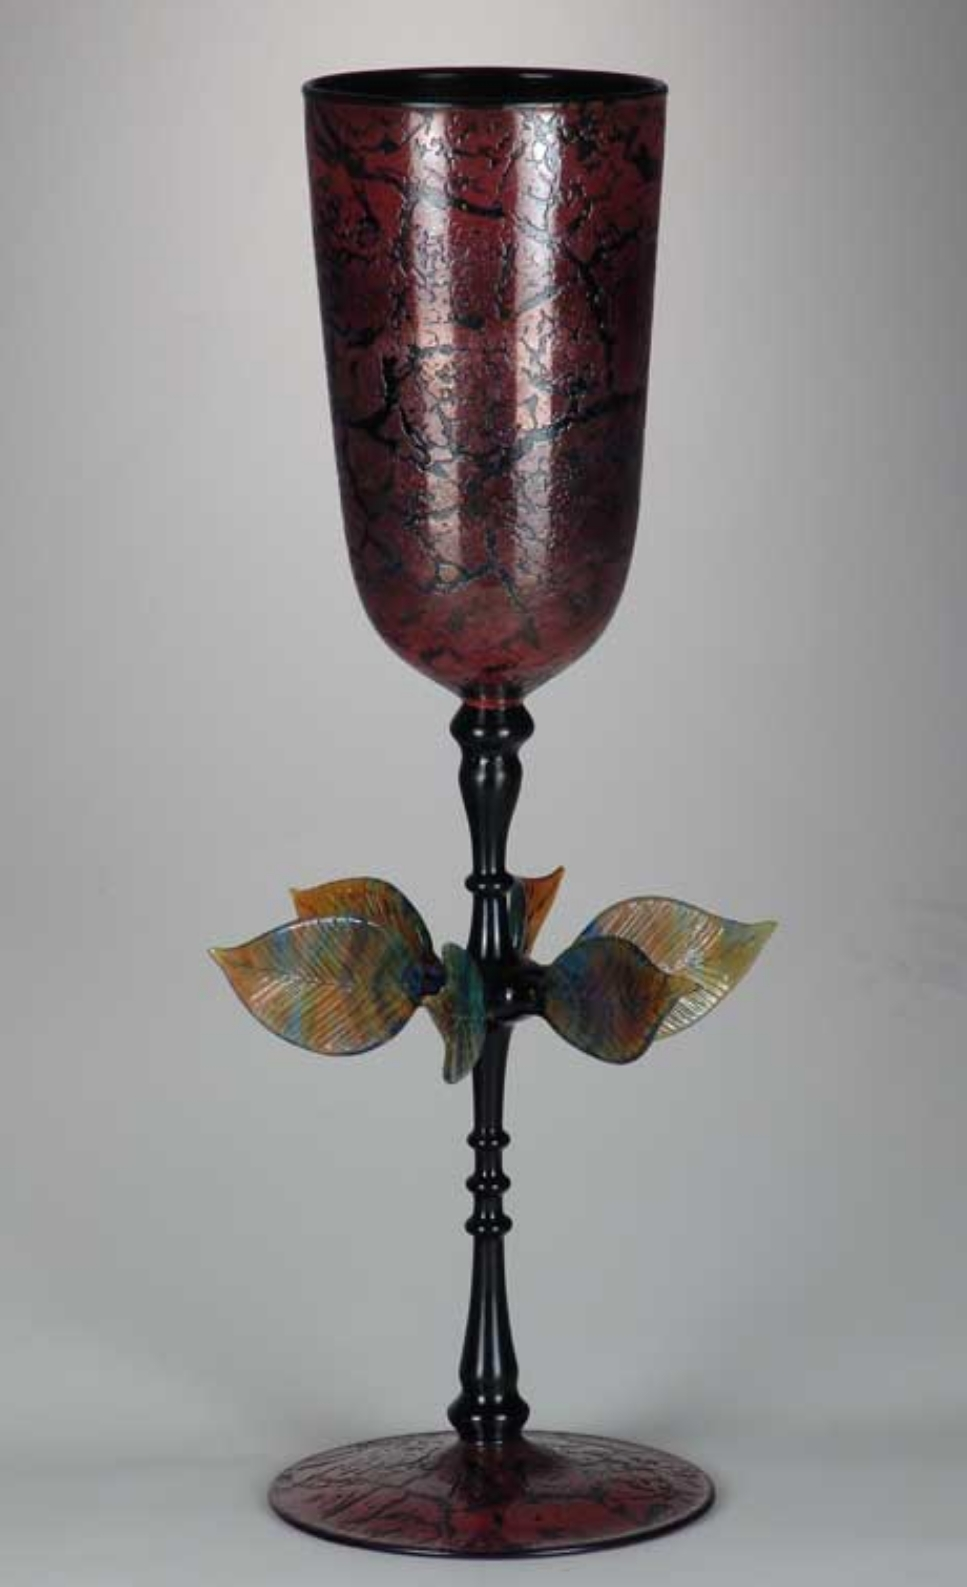 Flameworked glass goblet by Robert Mickelsen